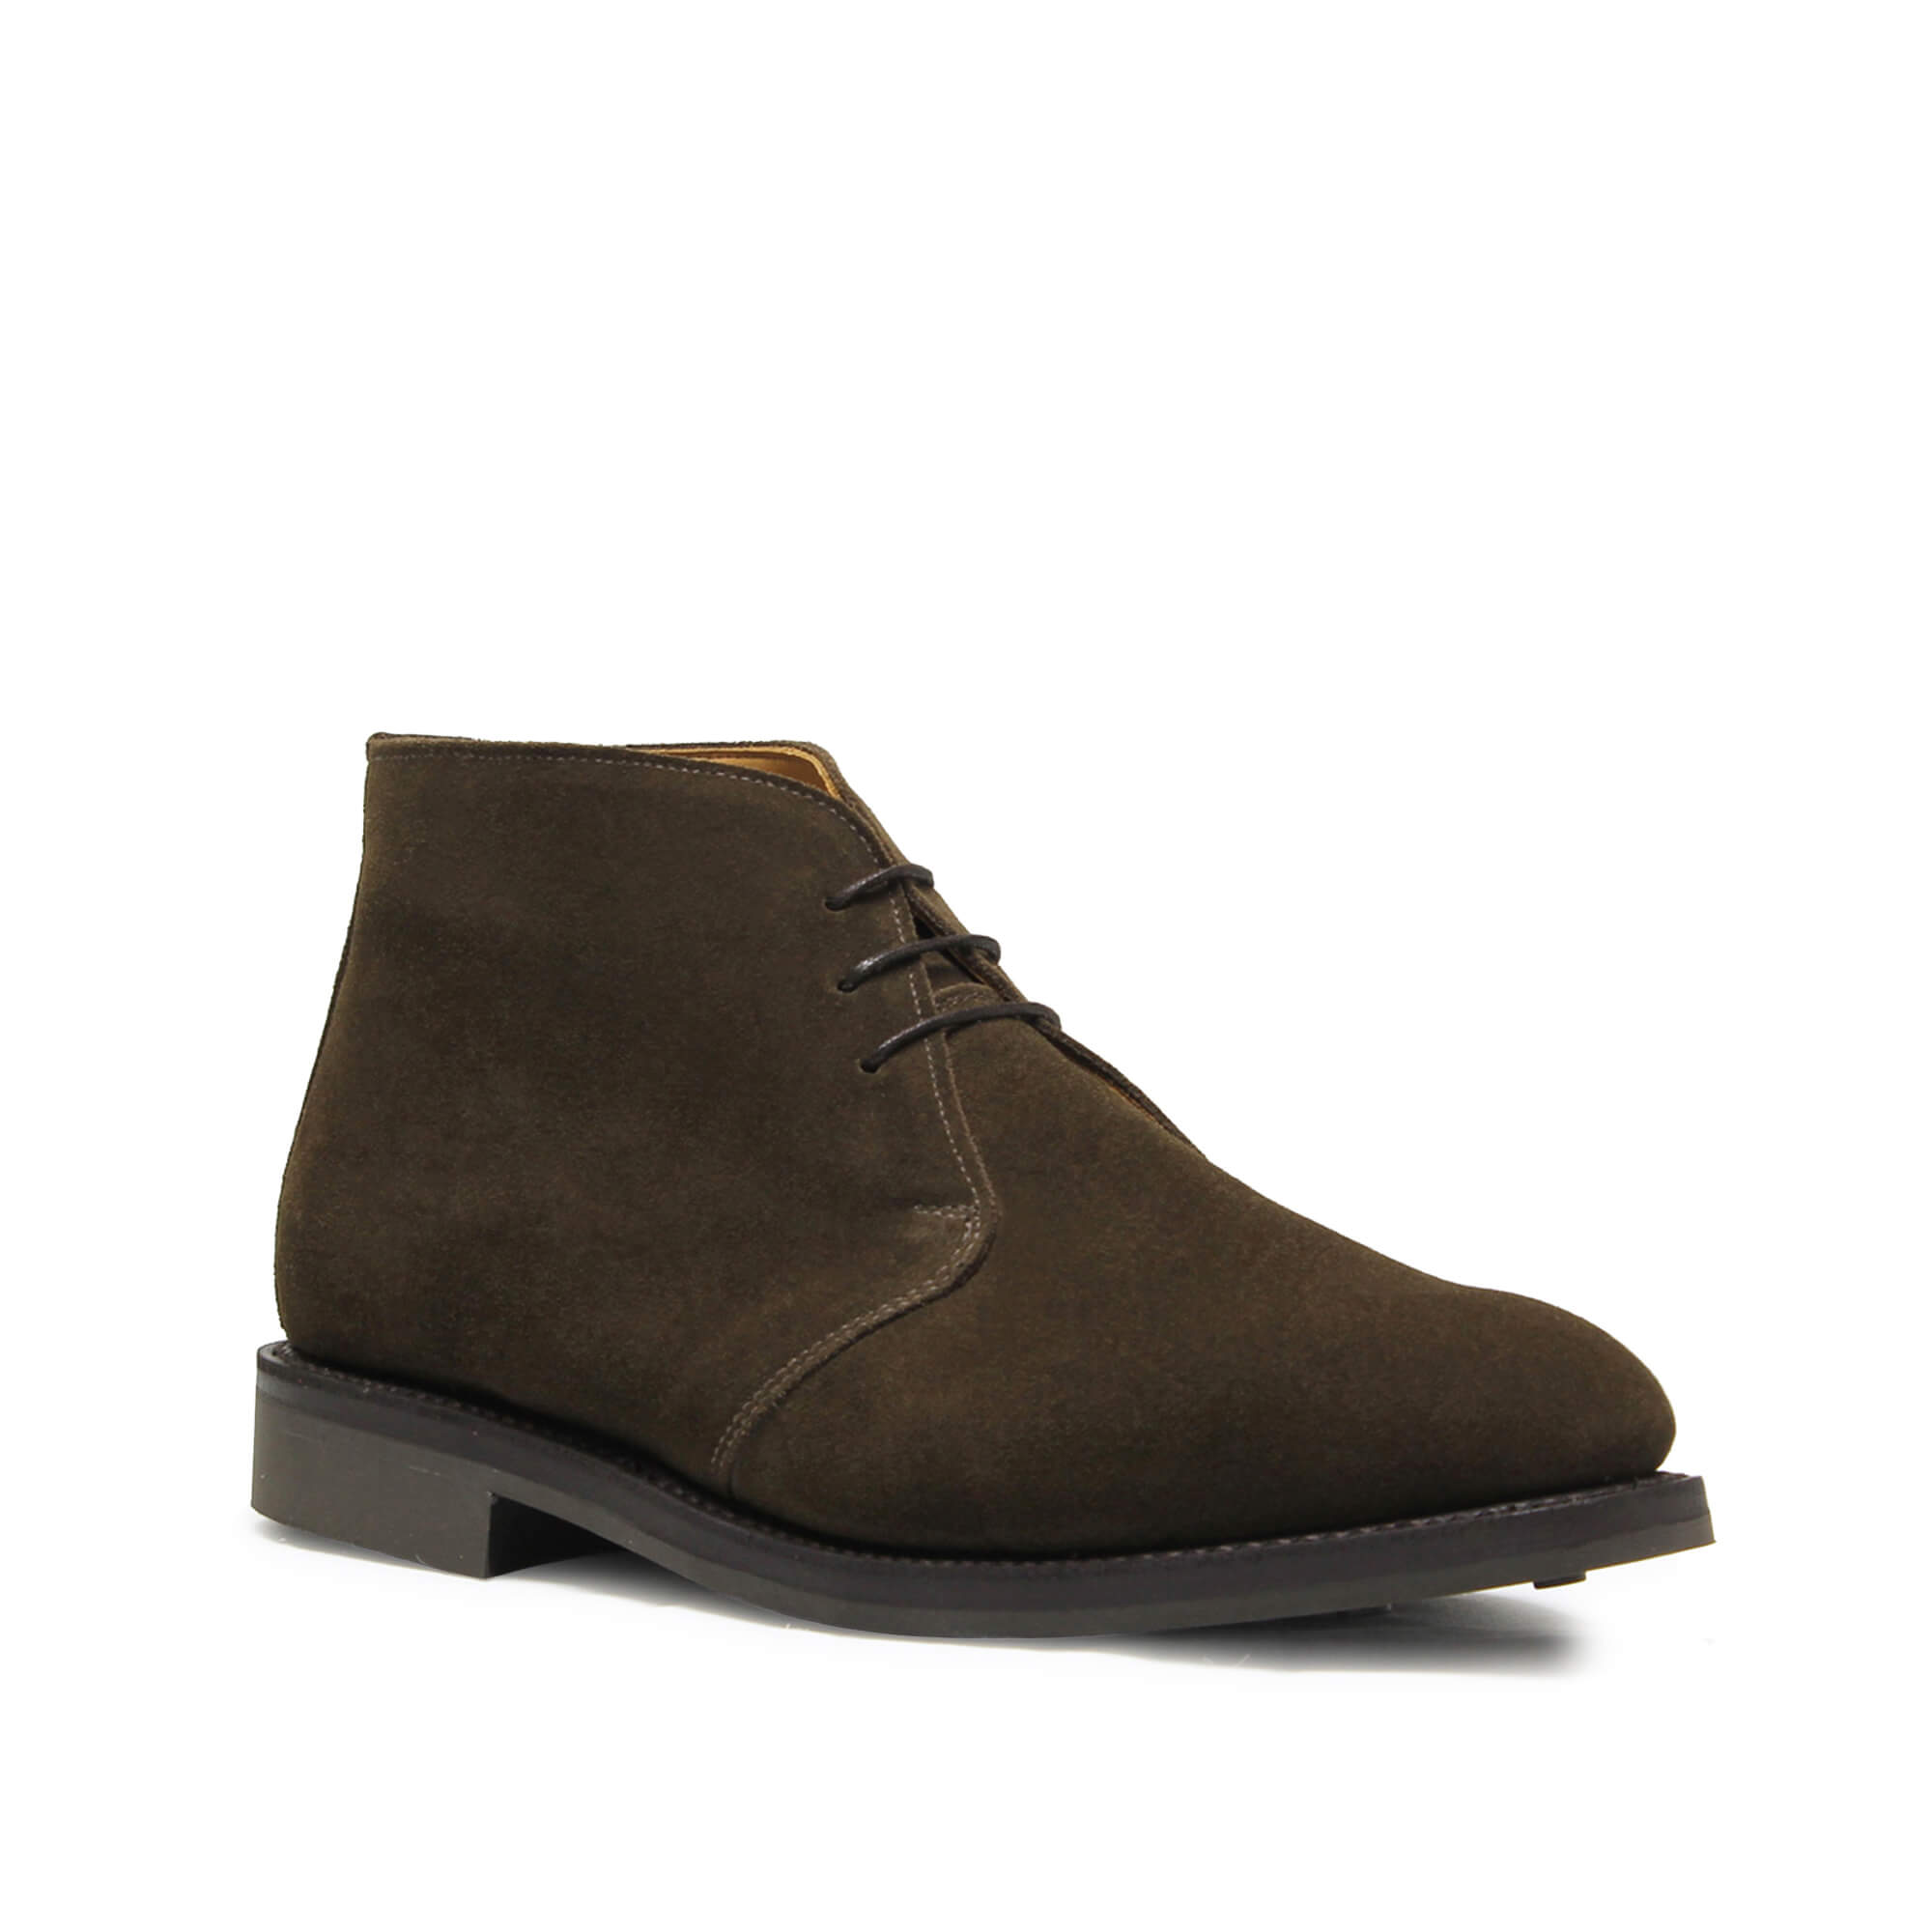 Sanders Men's Holborn Suede Lace-Up Boots 6140/TDS